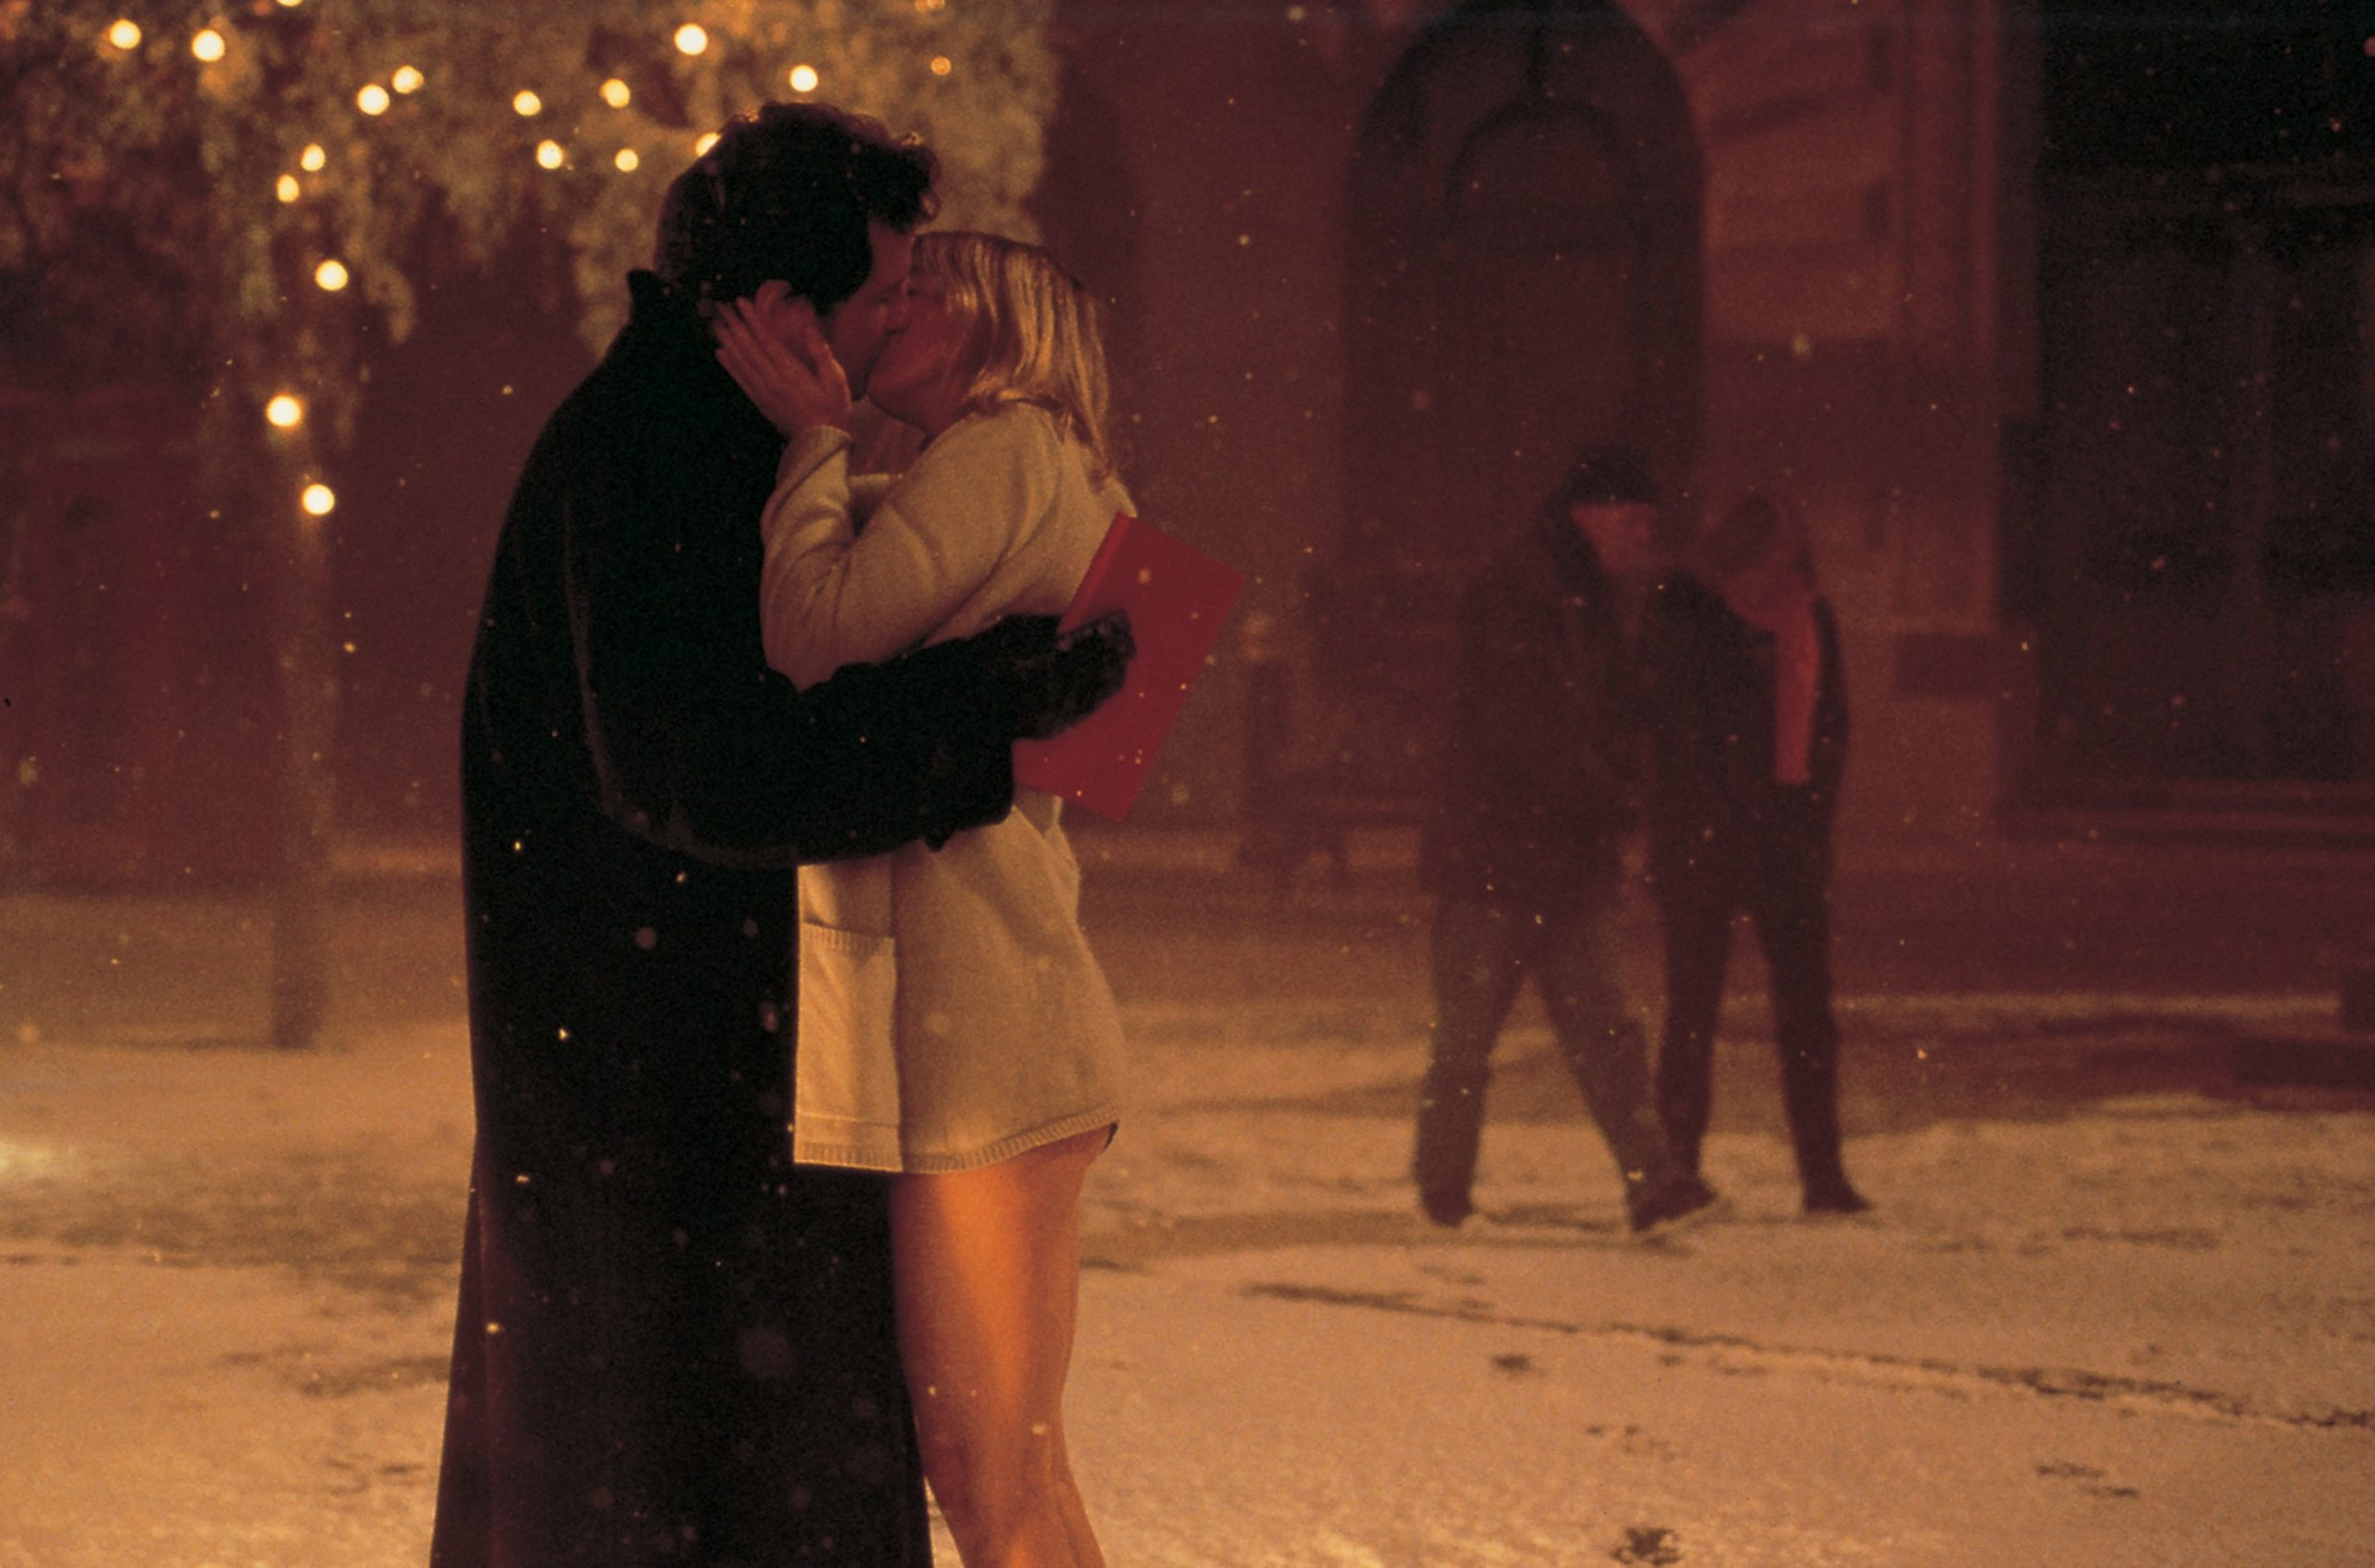 An image from Bridget Jones's Diary of Bridget and Mark kissing in the snow